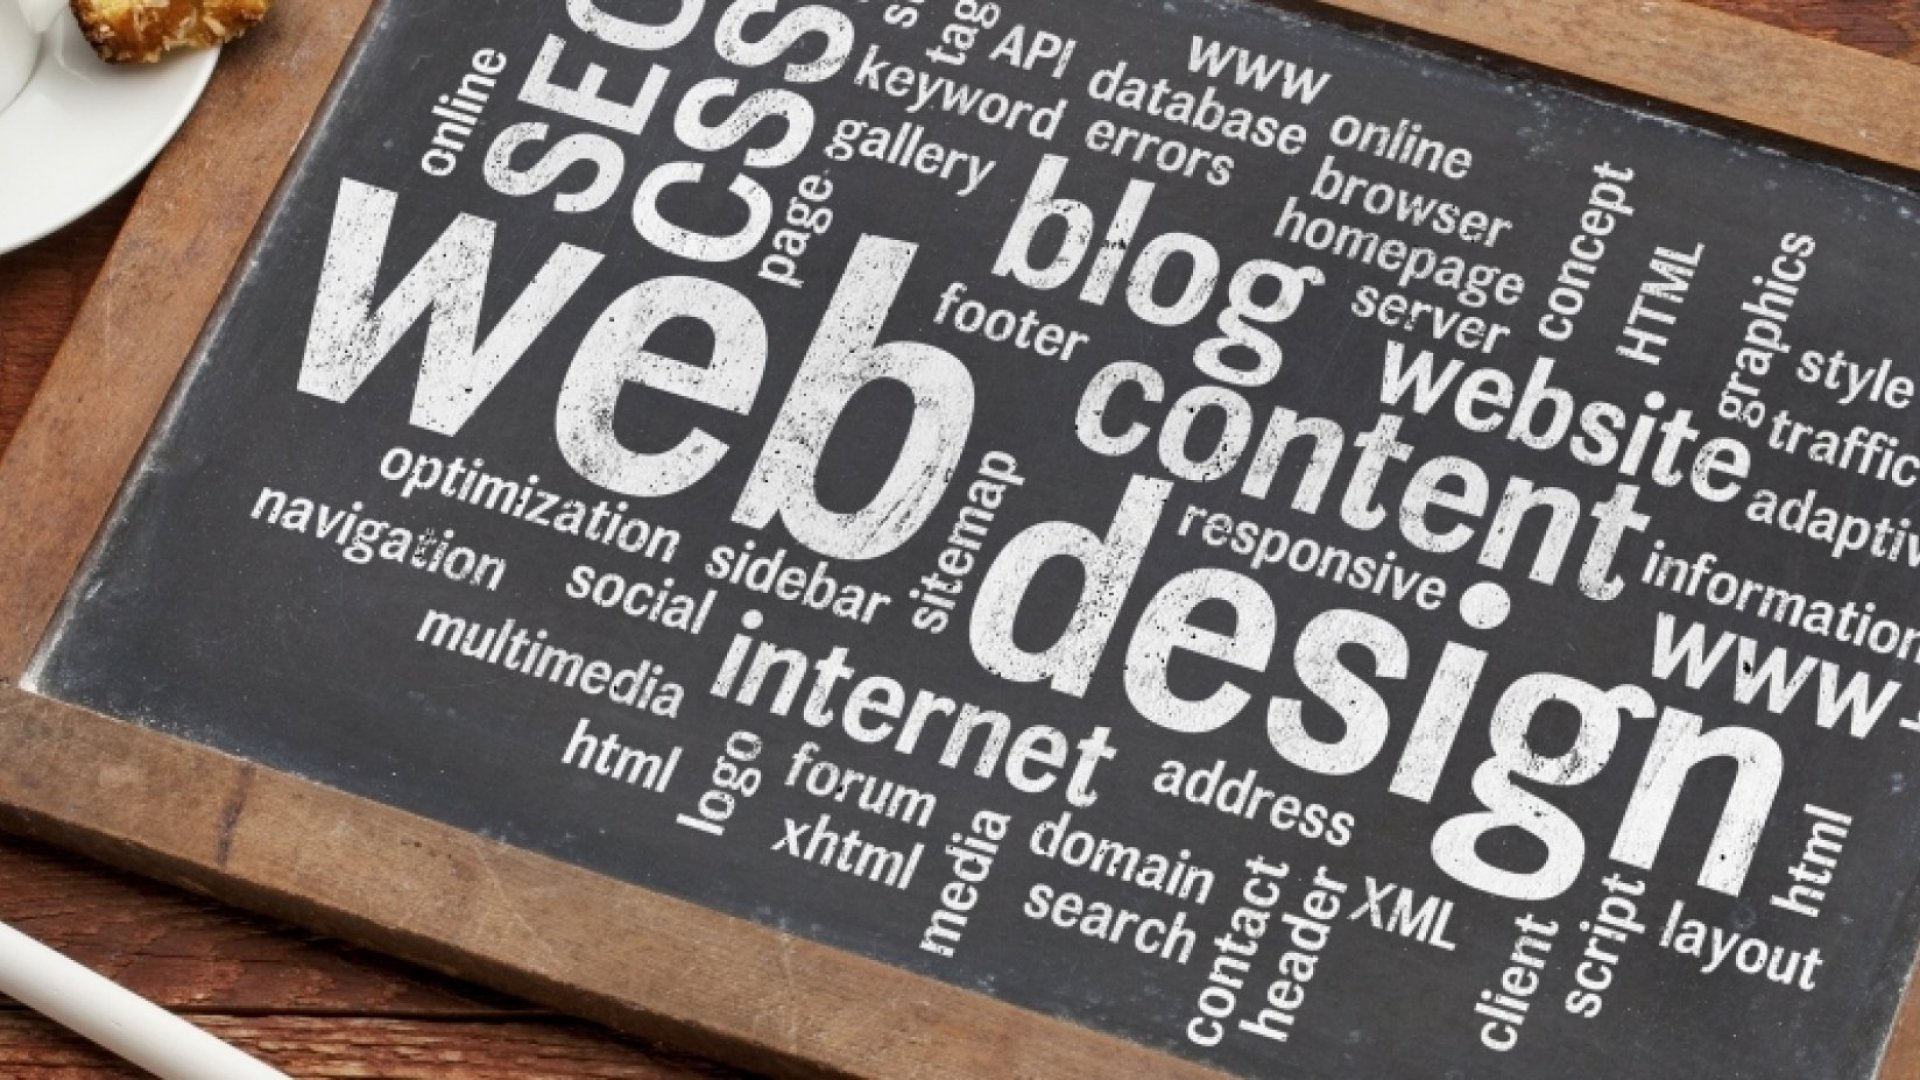 A Web Designer's Guide to Choosing the Best Provider